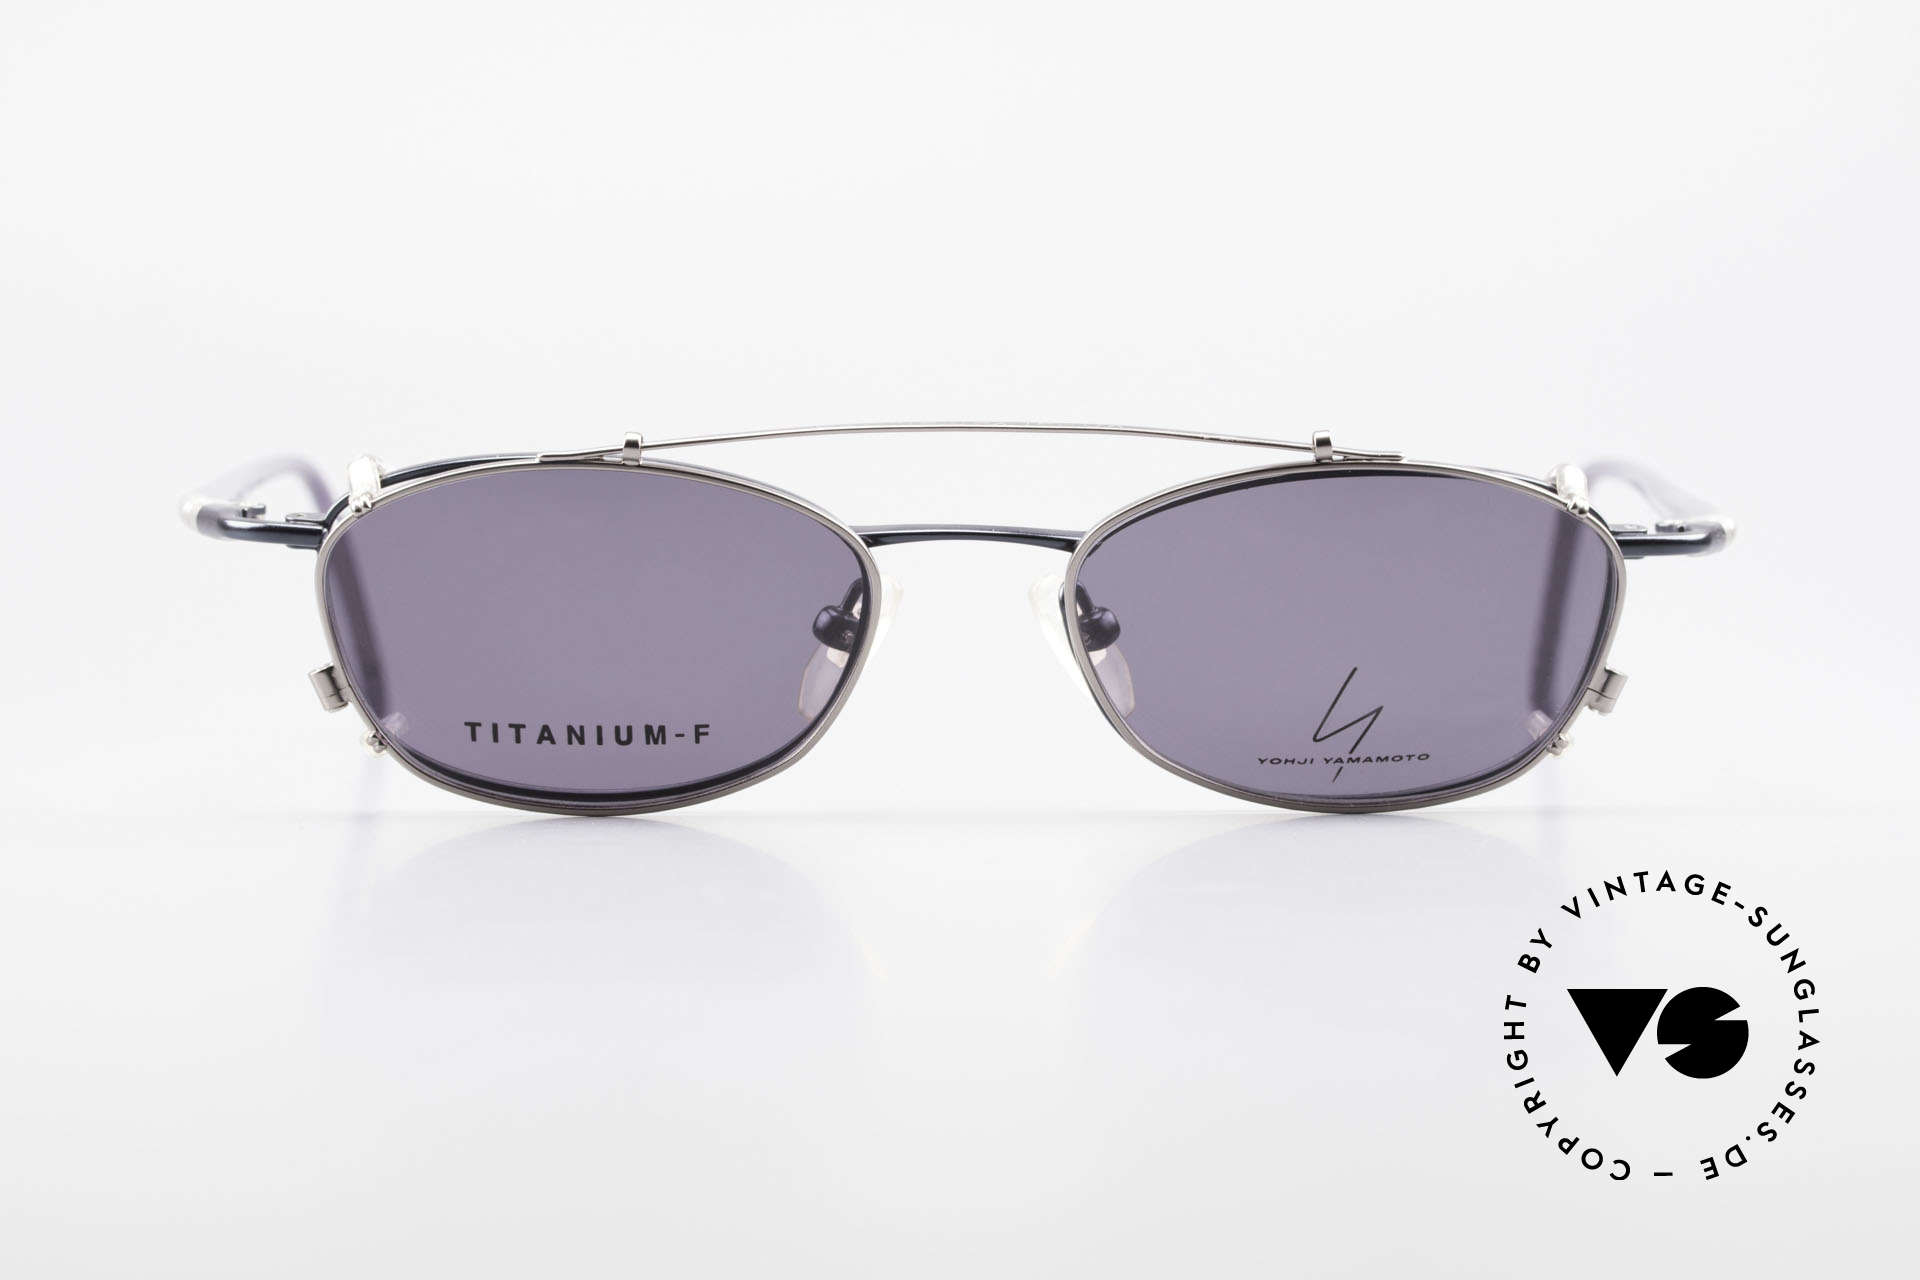 Yohji Yamamoto 51-0013 Clip On Titanium Frame Blue, outstanding quality from the 1990's, made in JAPAN, Made for Men and Women